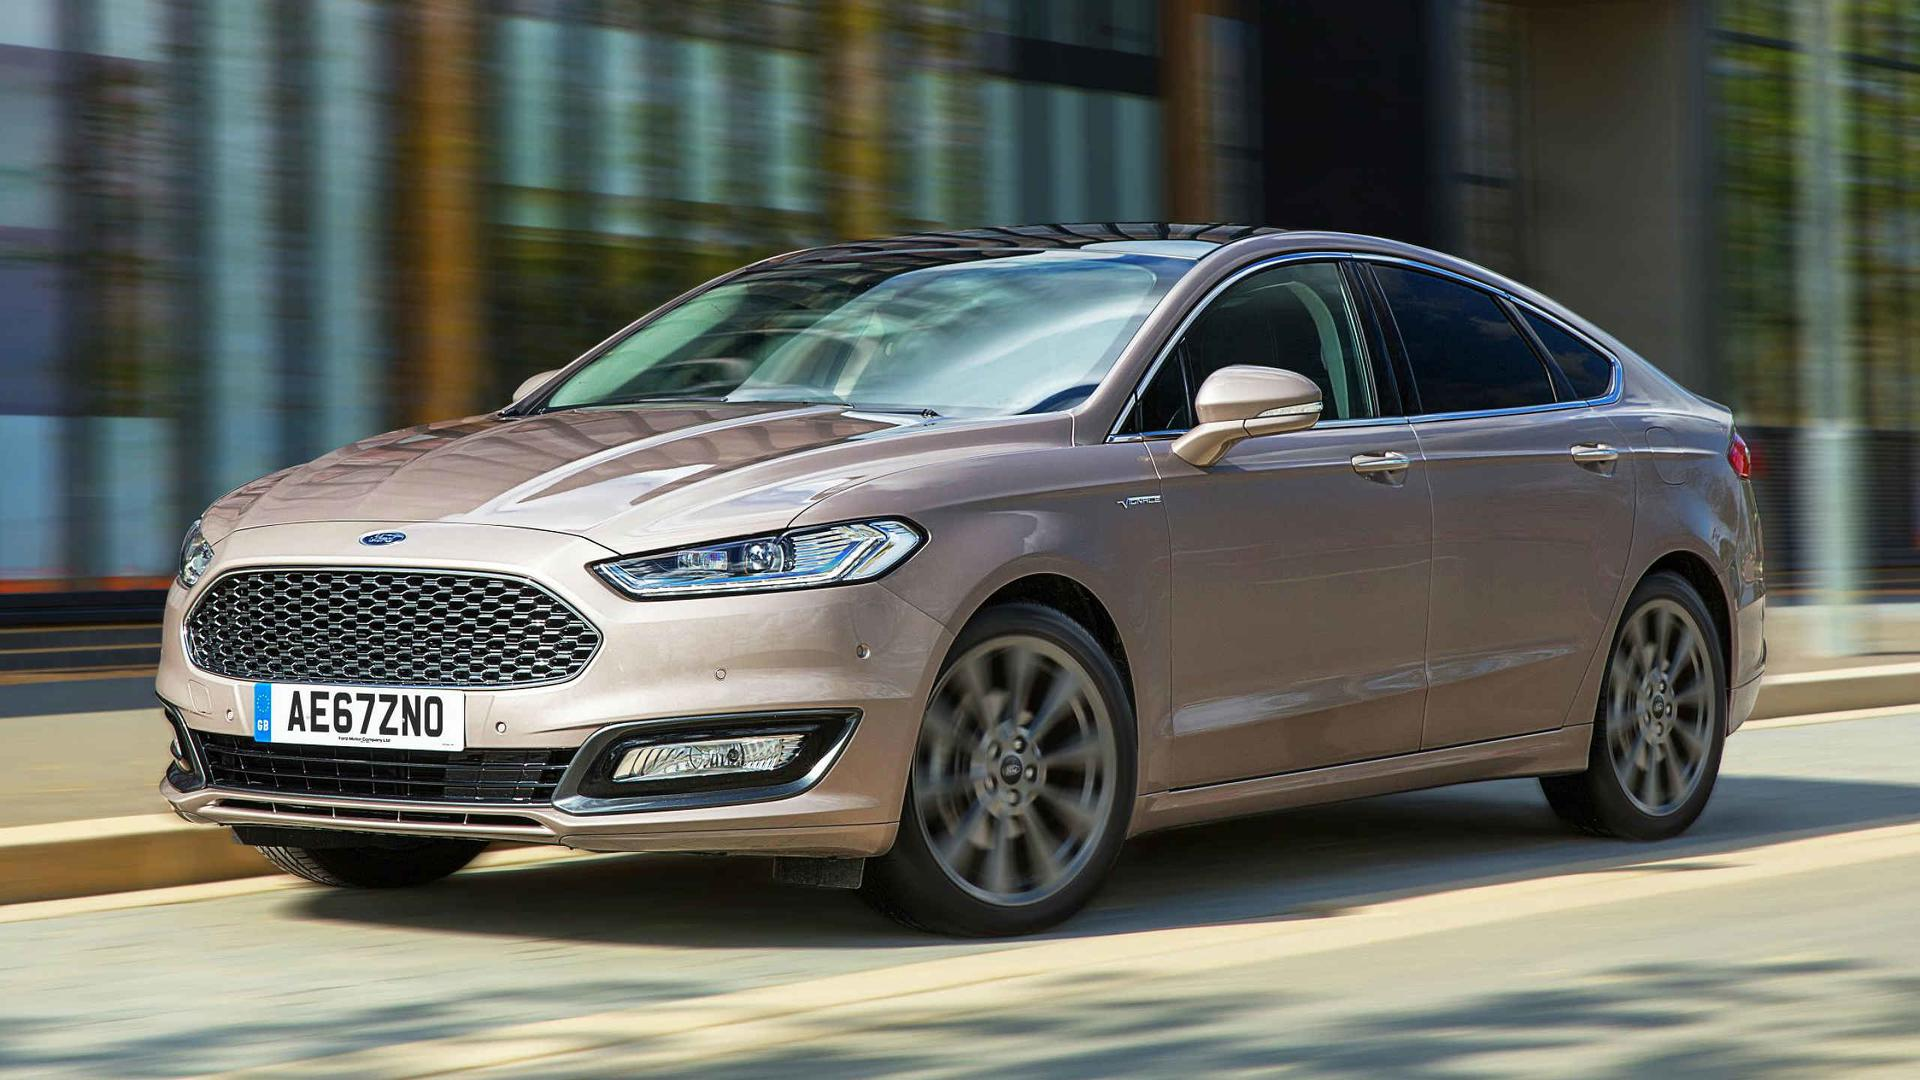 More rumors suggest the ford mondeo will be discontinued update